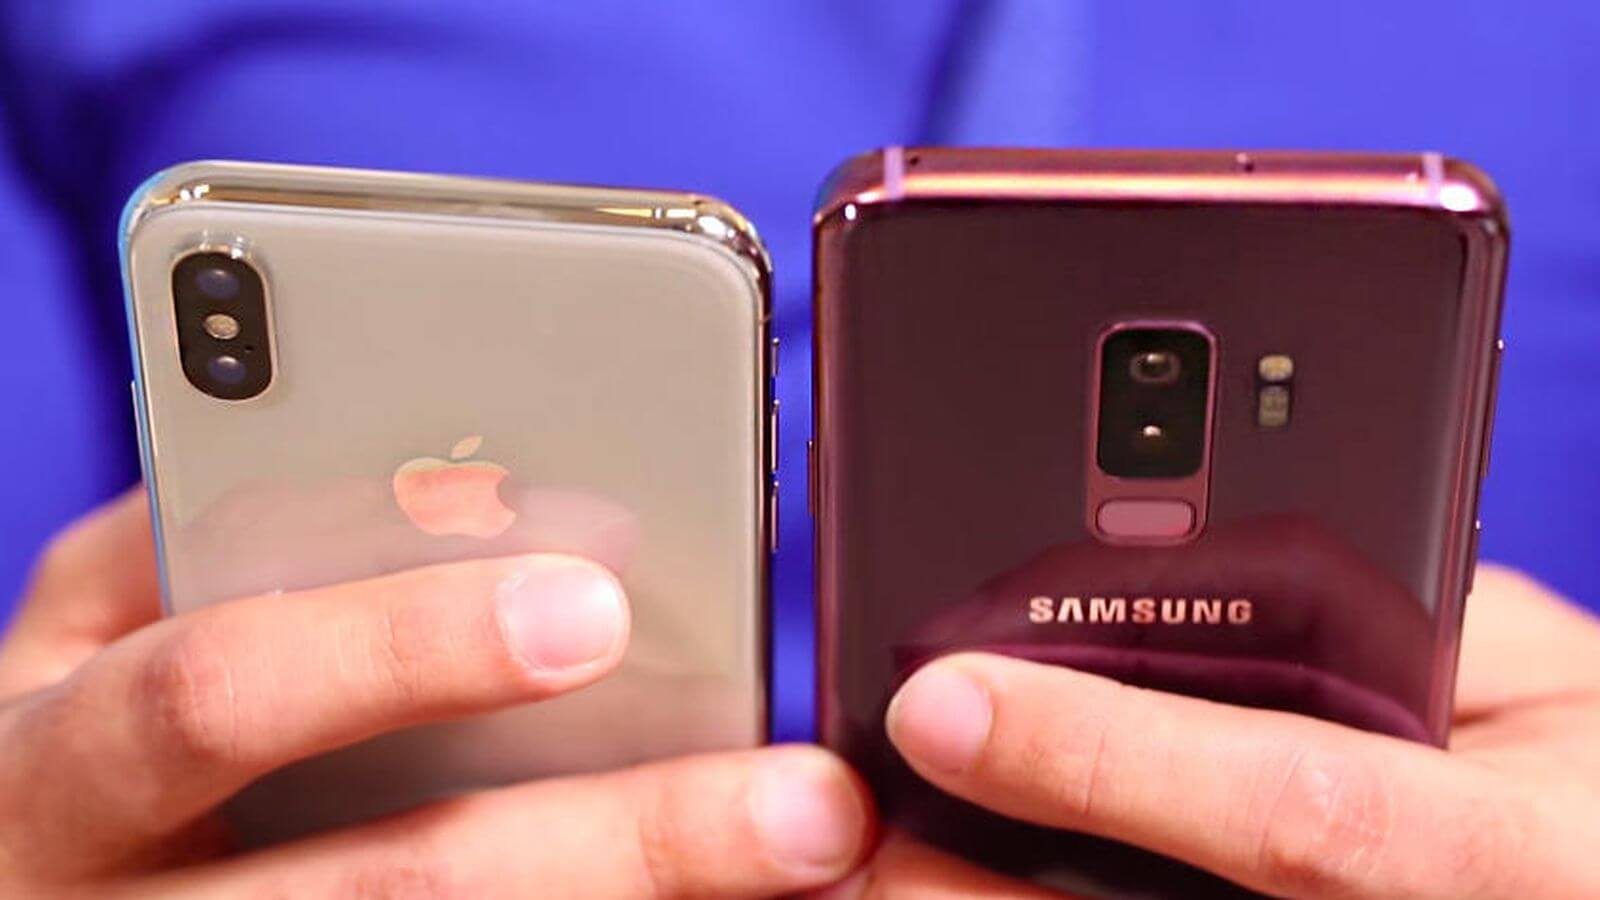 Galaxy S9 vs iPhone X - Galaxy S9 passa o iPhone X e torna-se o celular mais vendido do mundo em abril